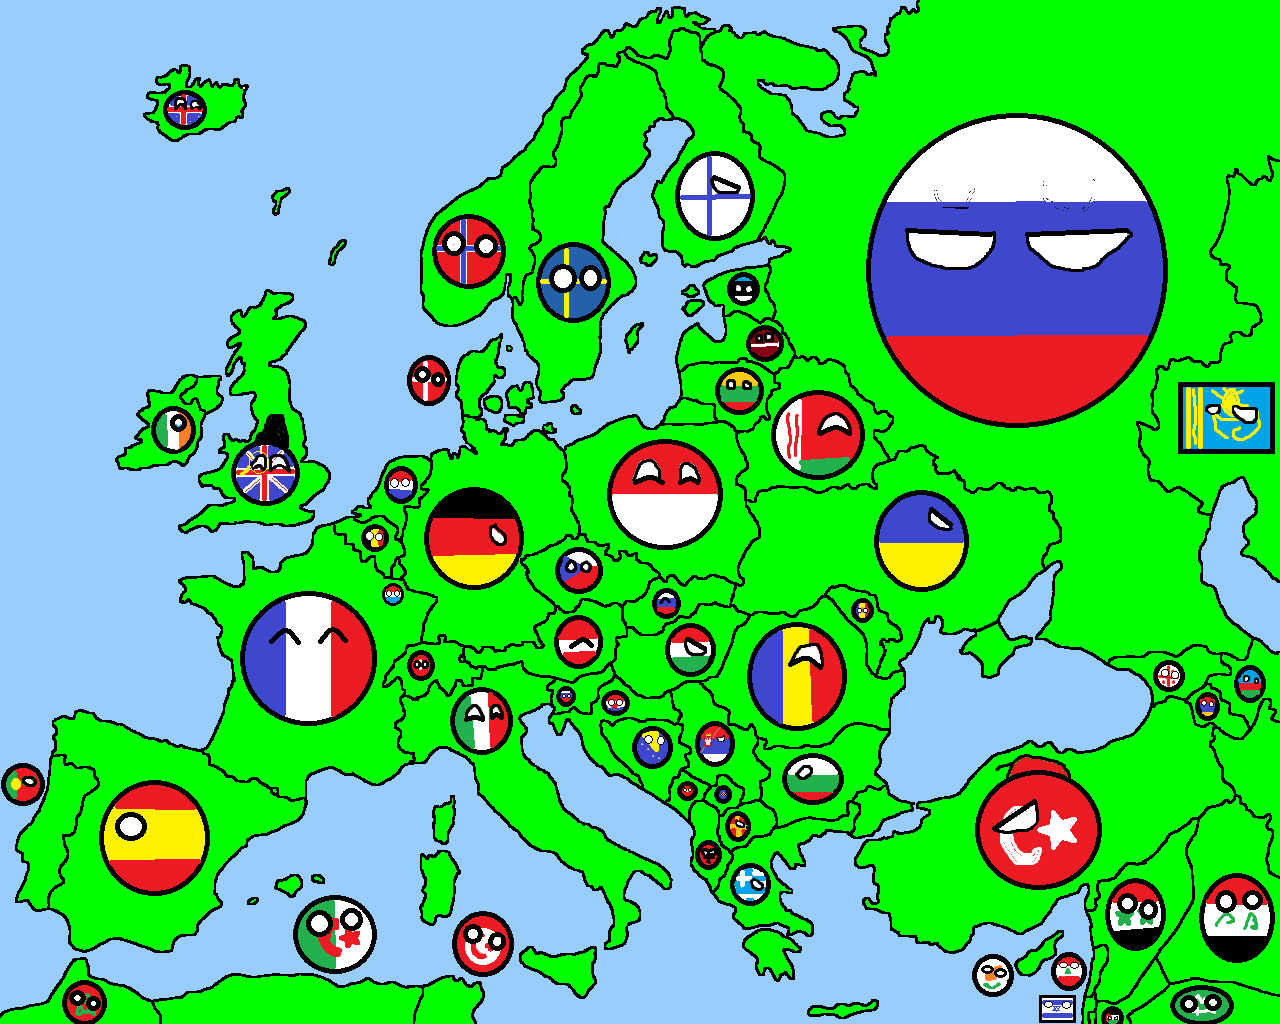 Green Map Of Europe.Image Map Of Europe In Countryballs Png Thefutureofeuropes Wiki